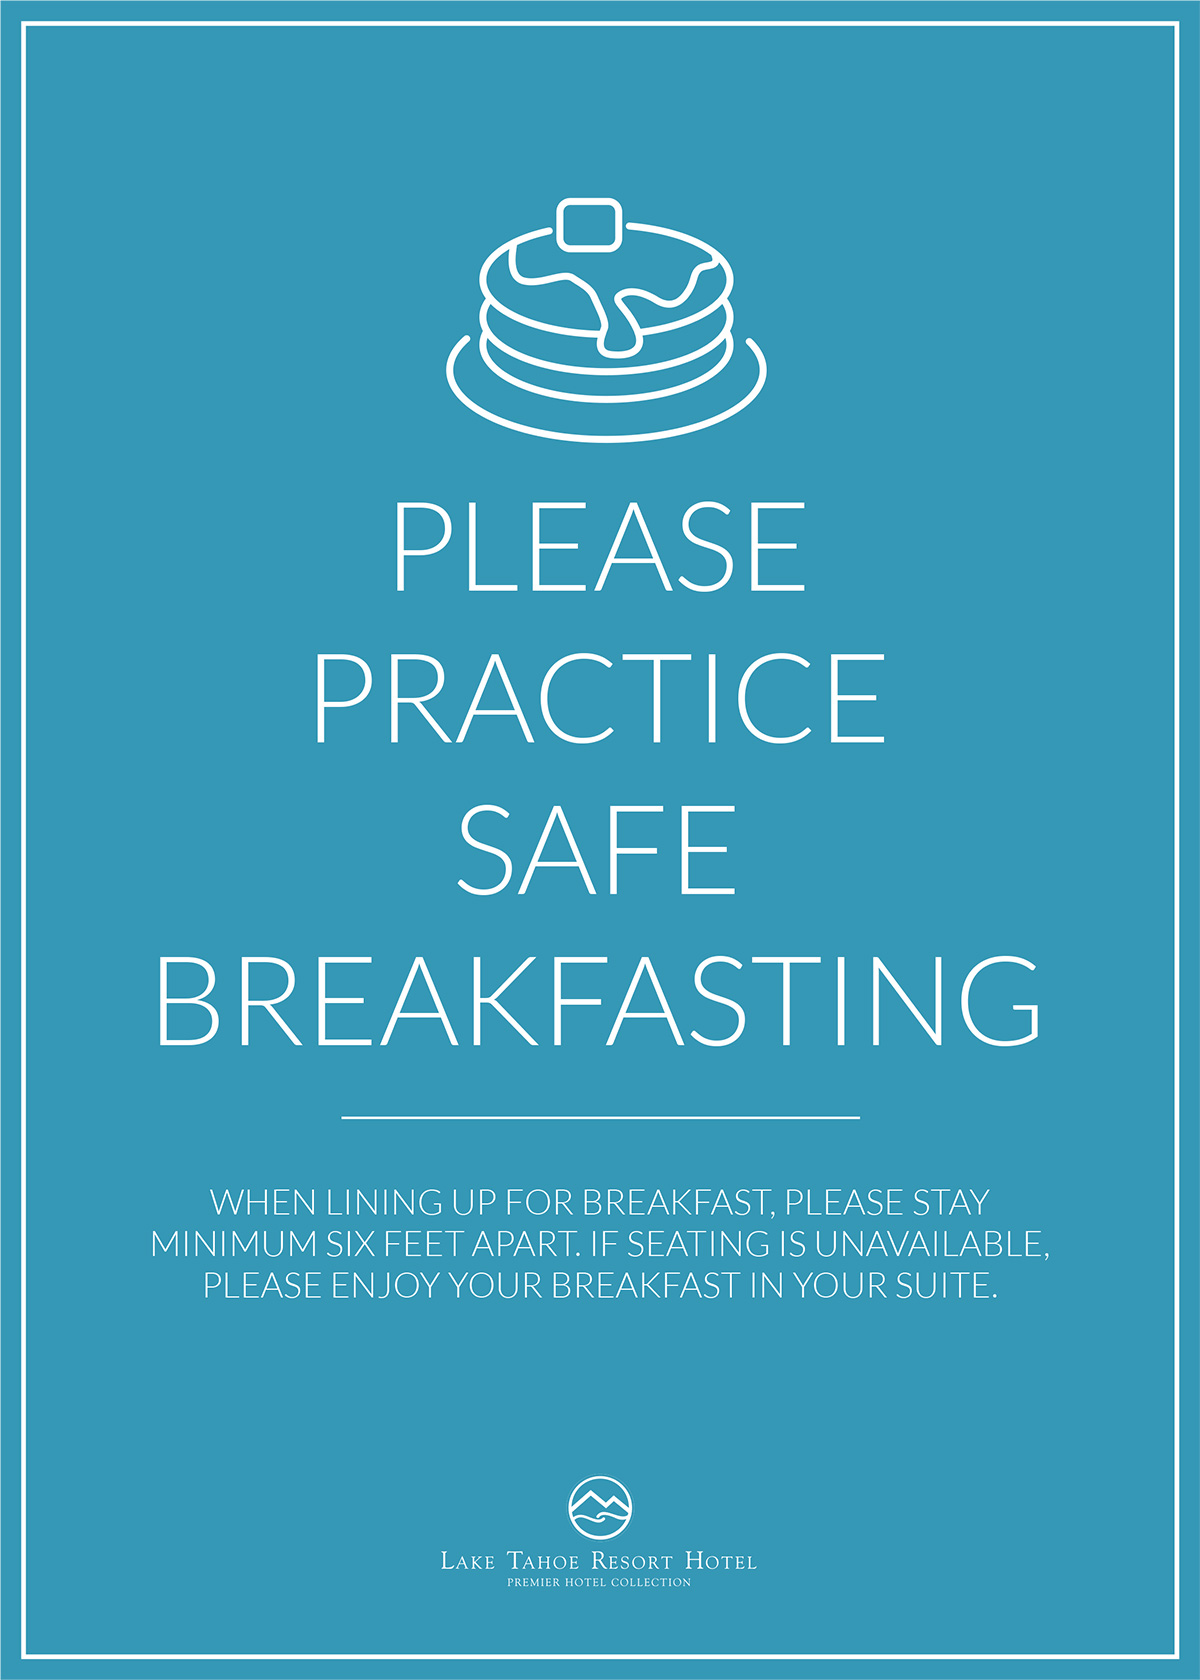 Hotel Safety Poster